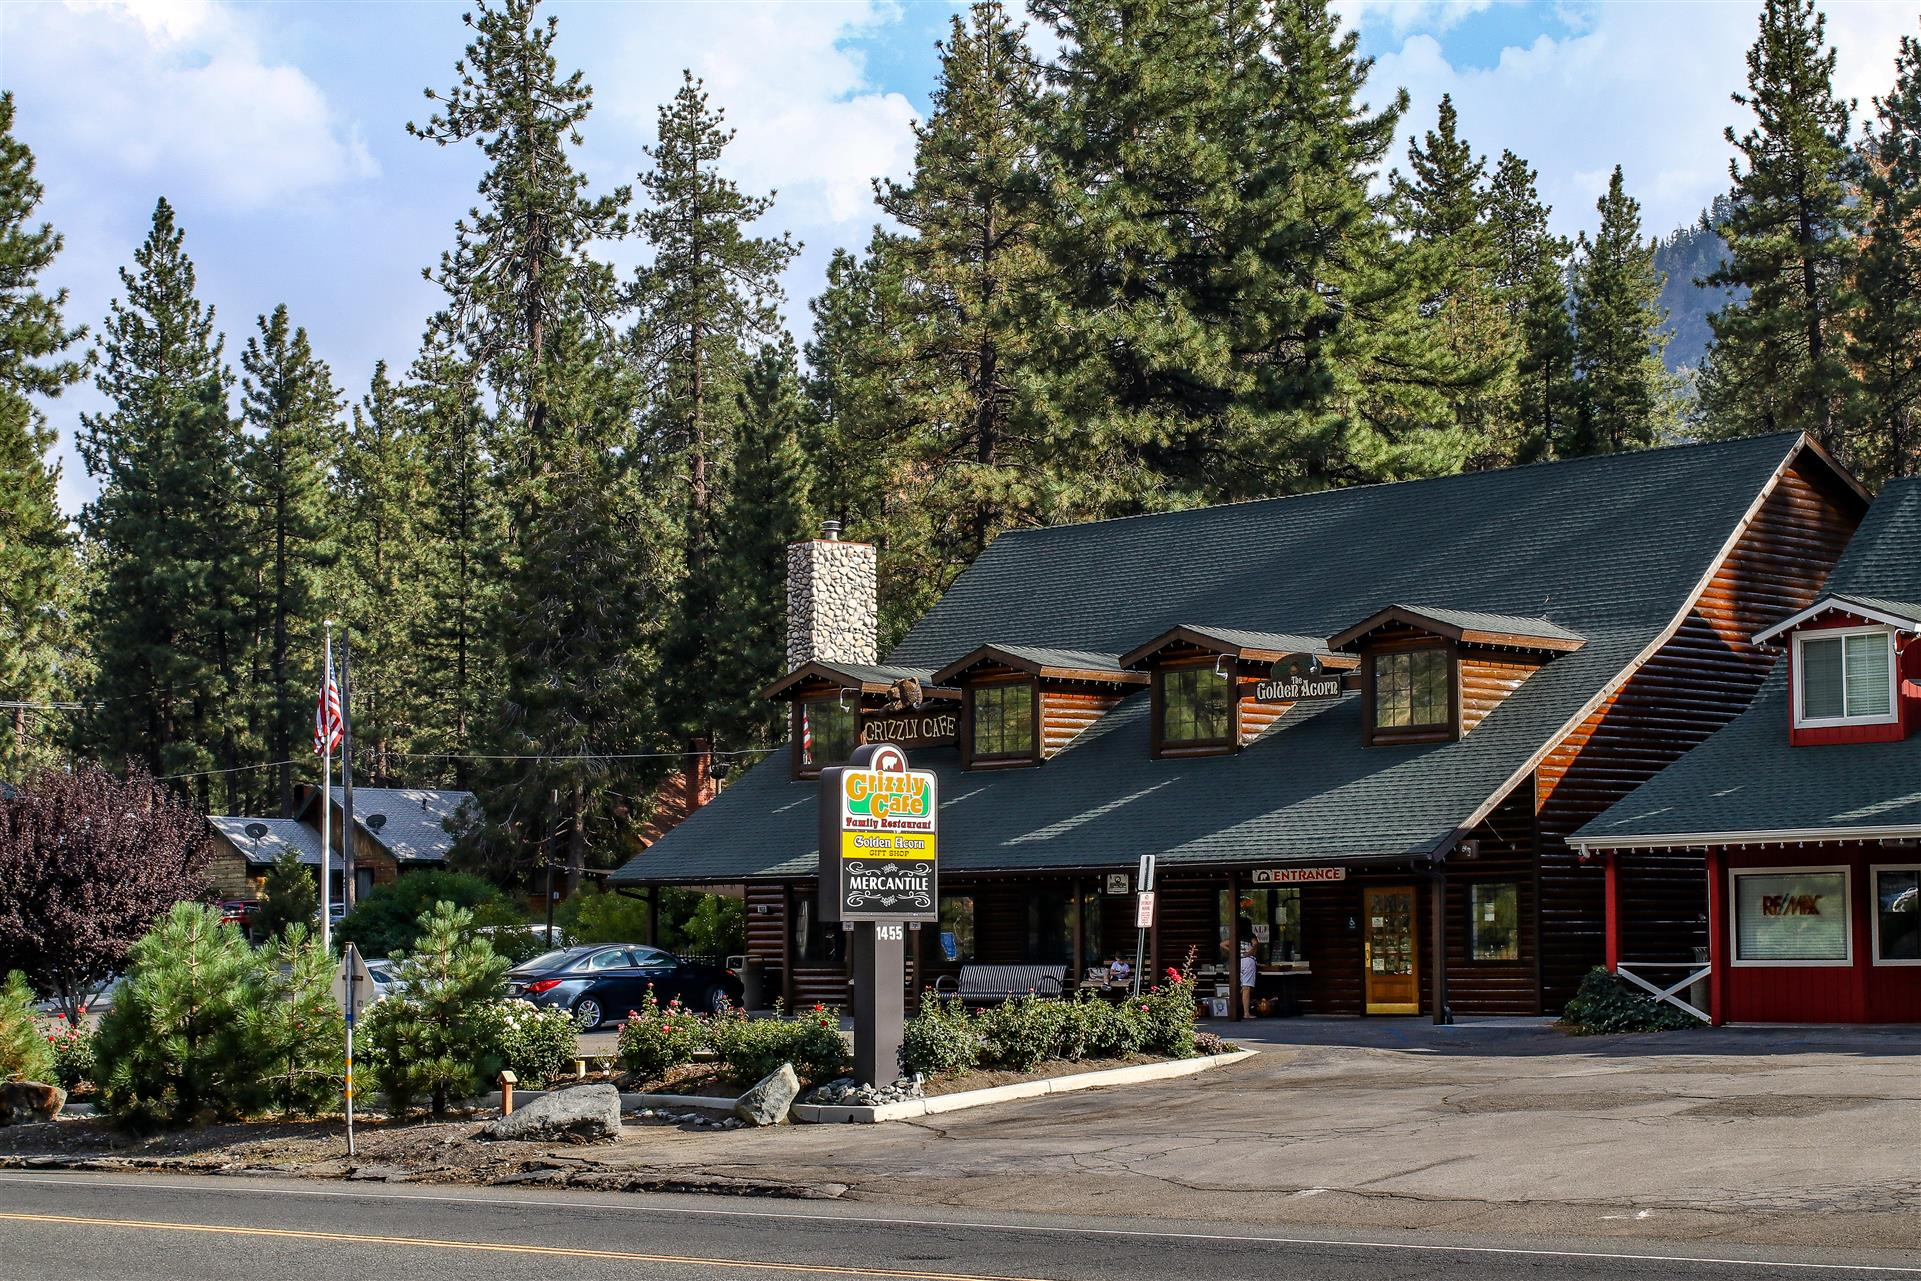 The exterior of Grizzly Cafe and parking lot  from the opposite side of the road